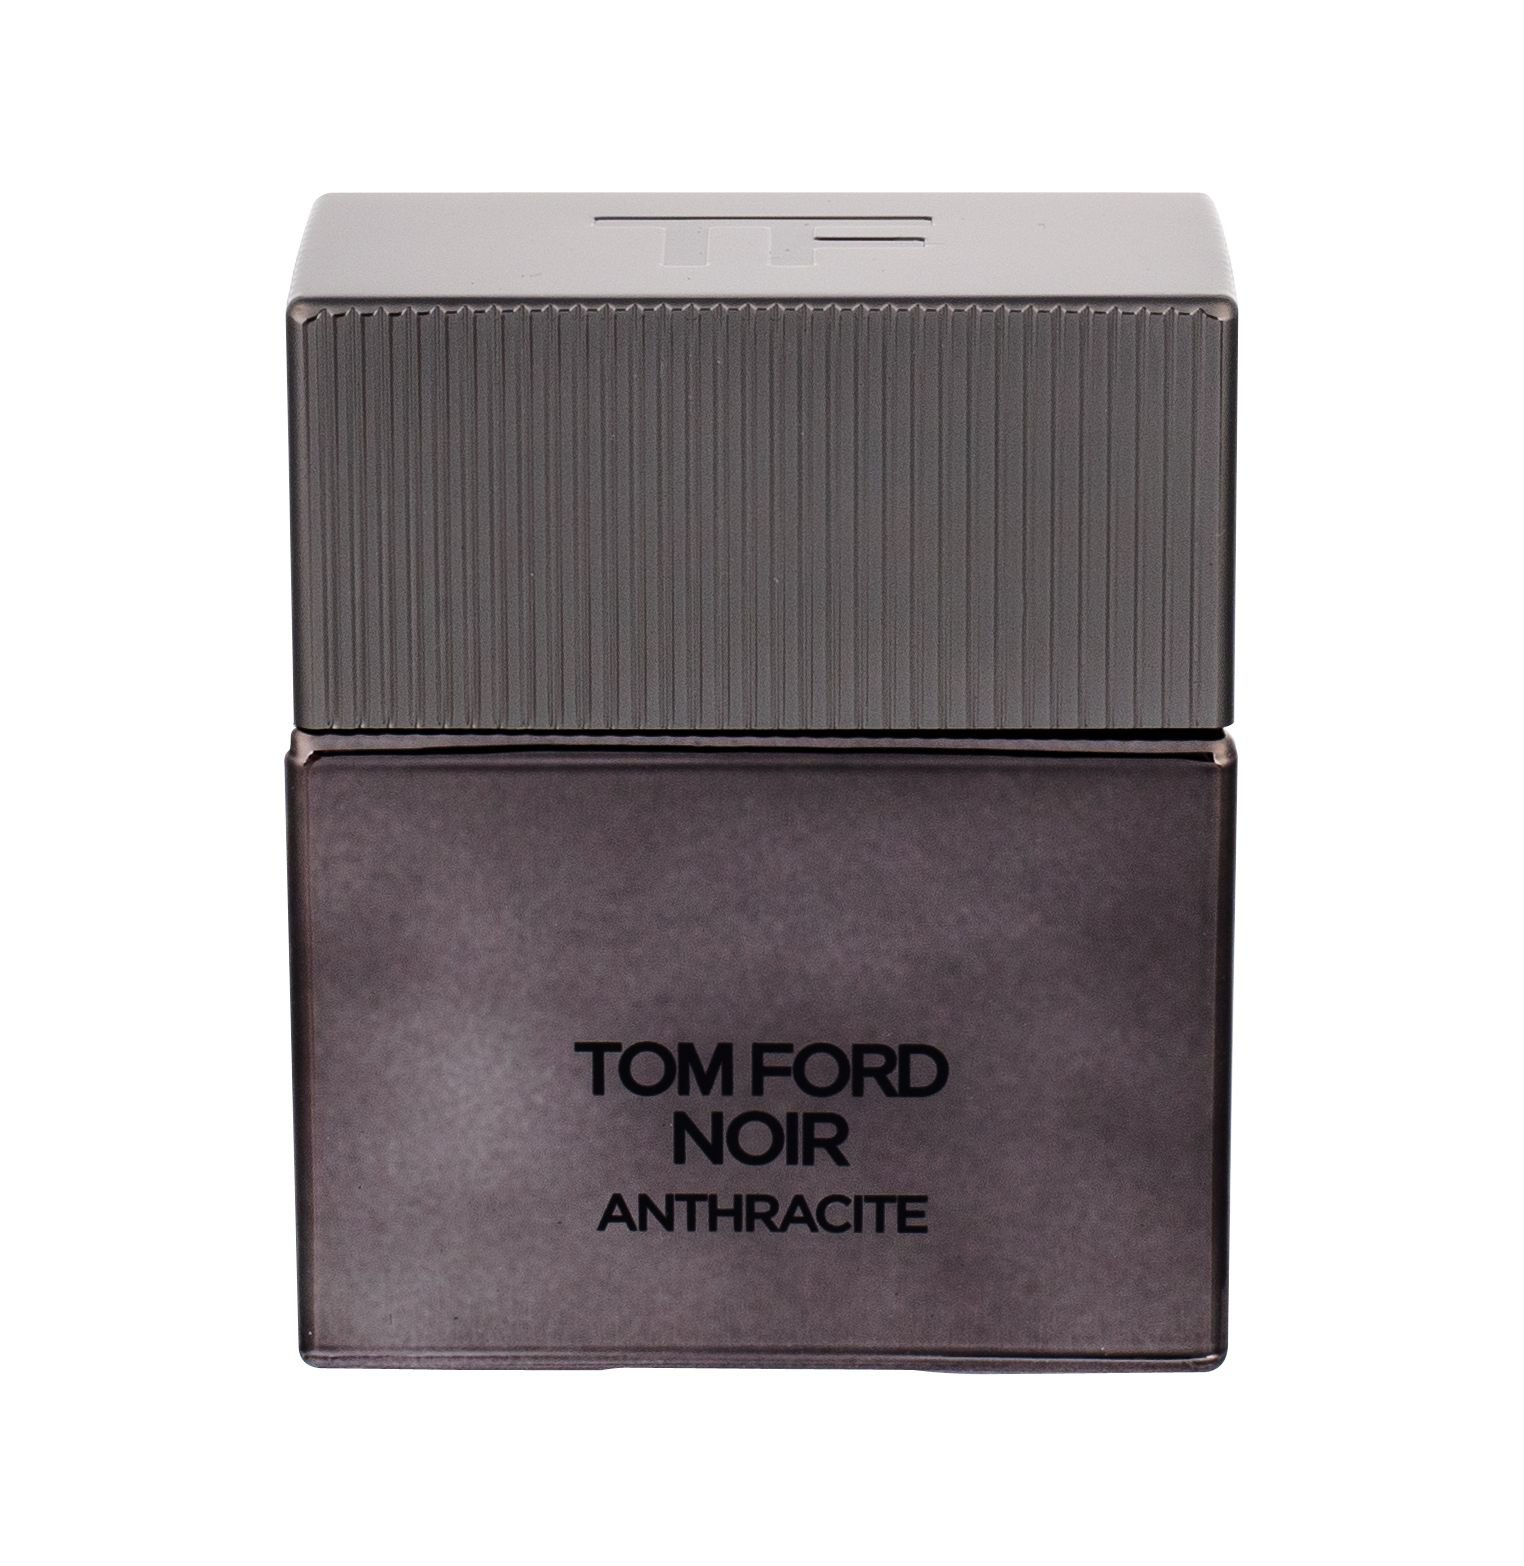 TOM FORD Noir Anthracite (M)